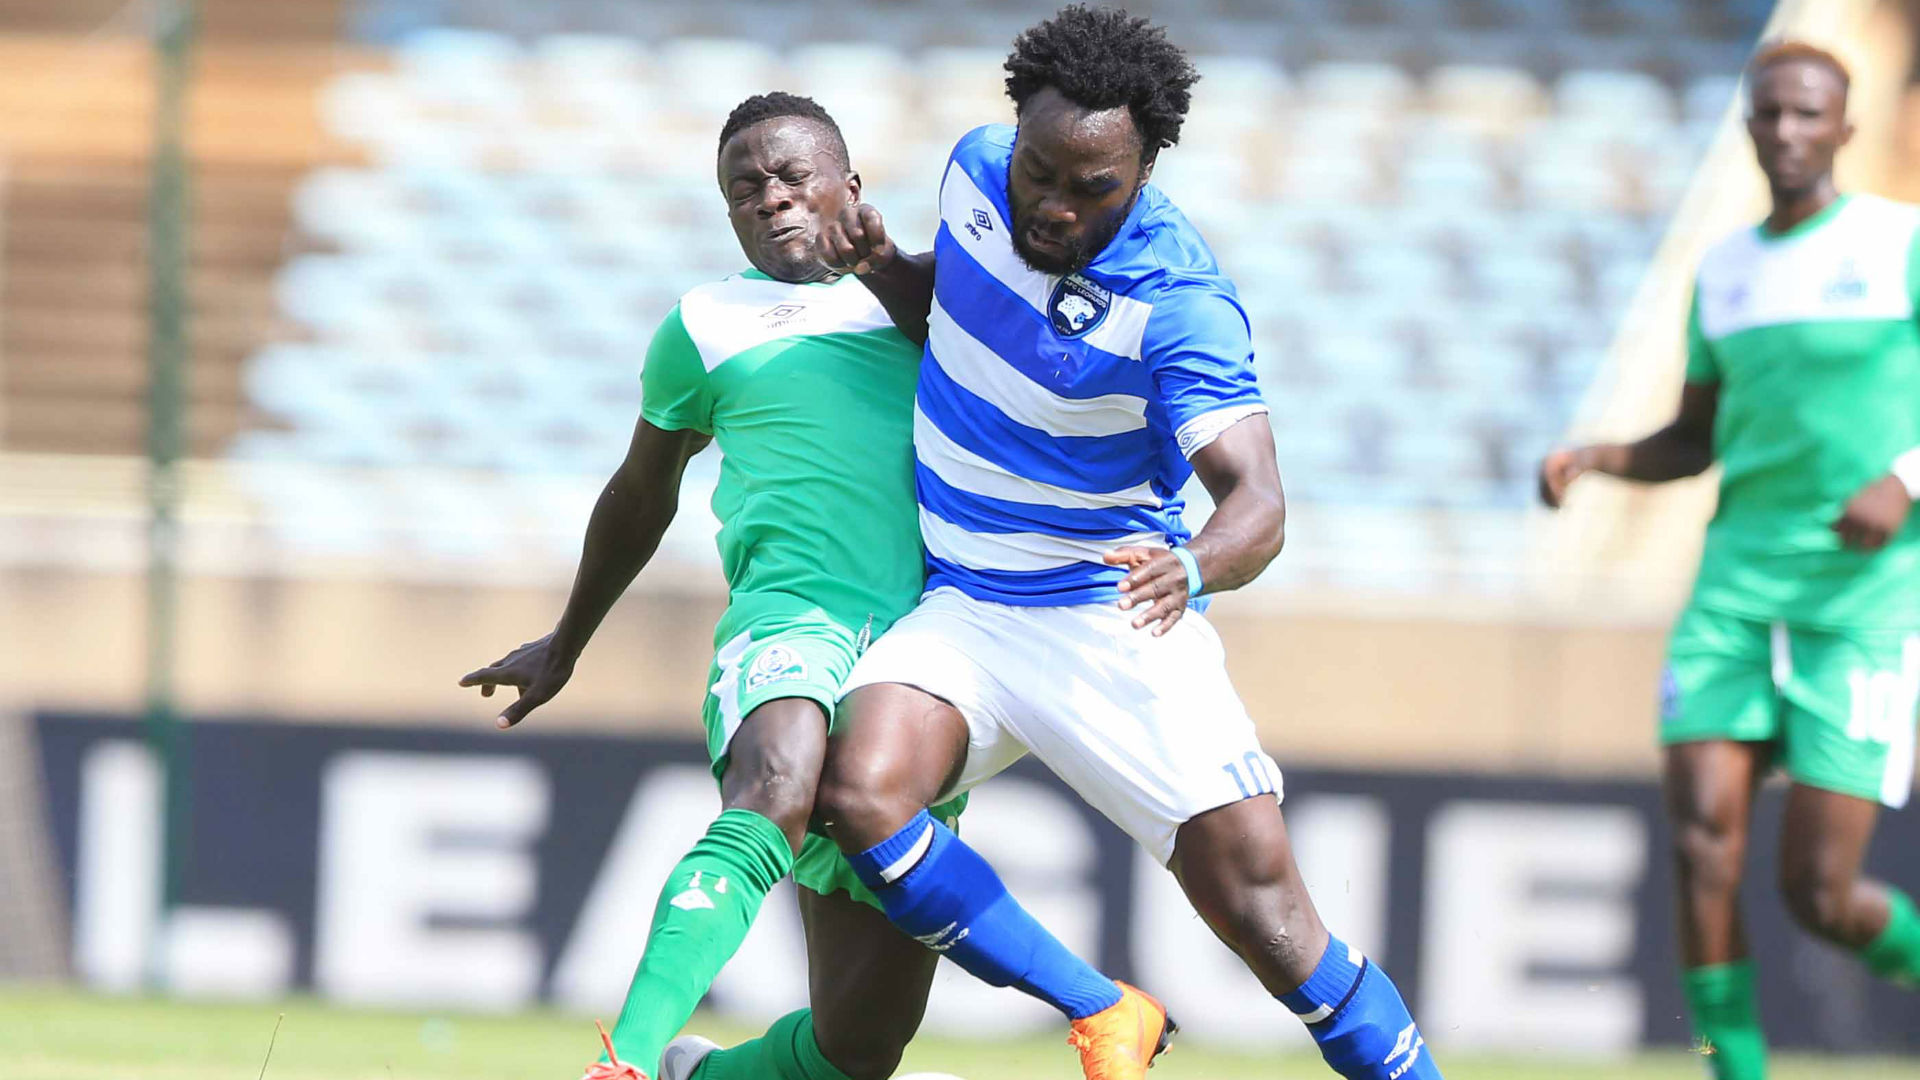 Coronavirus: AFC Leopards star Rupia worried as contract nears end